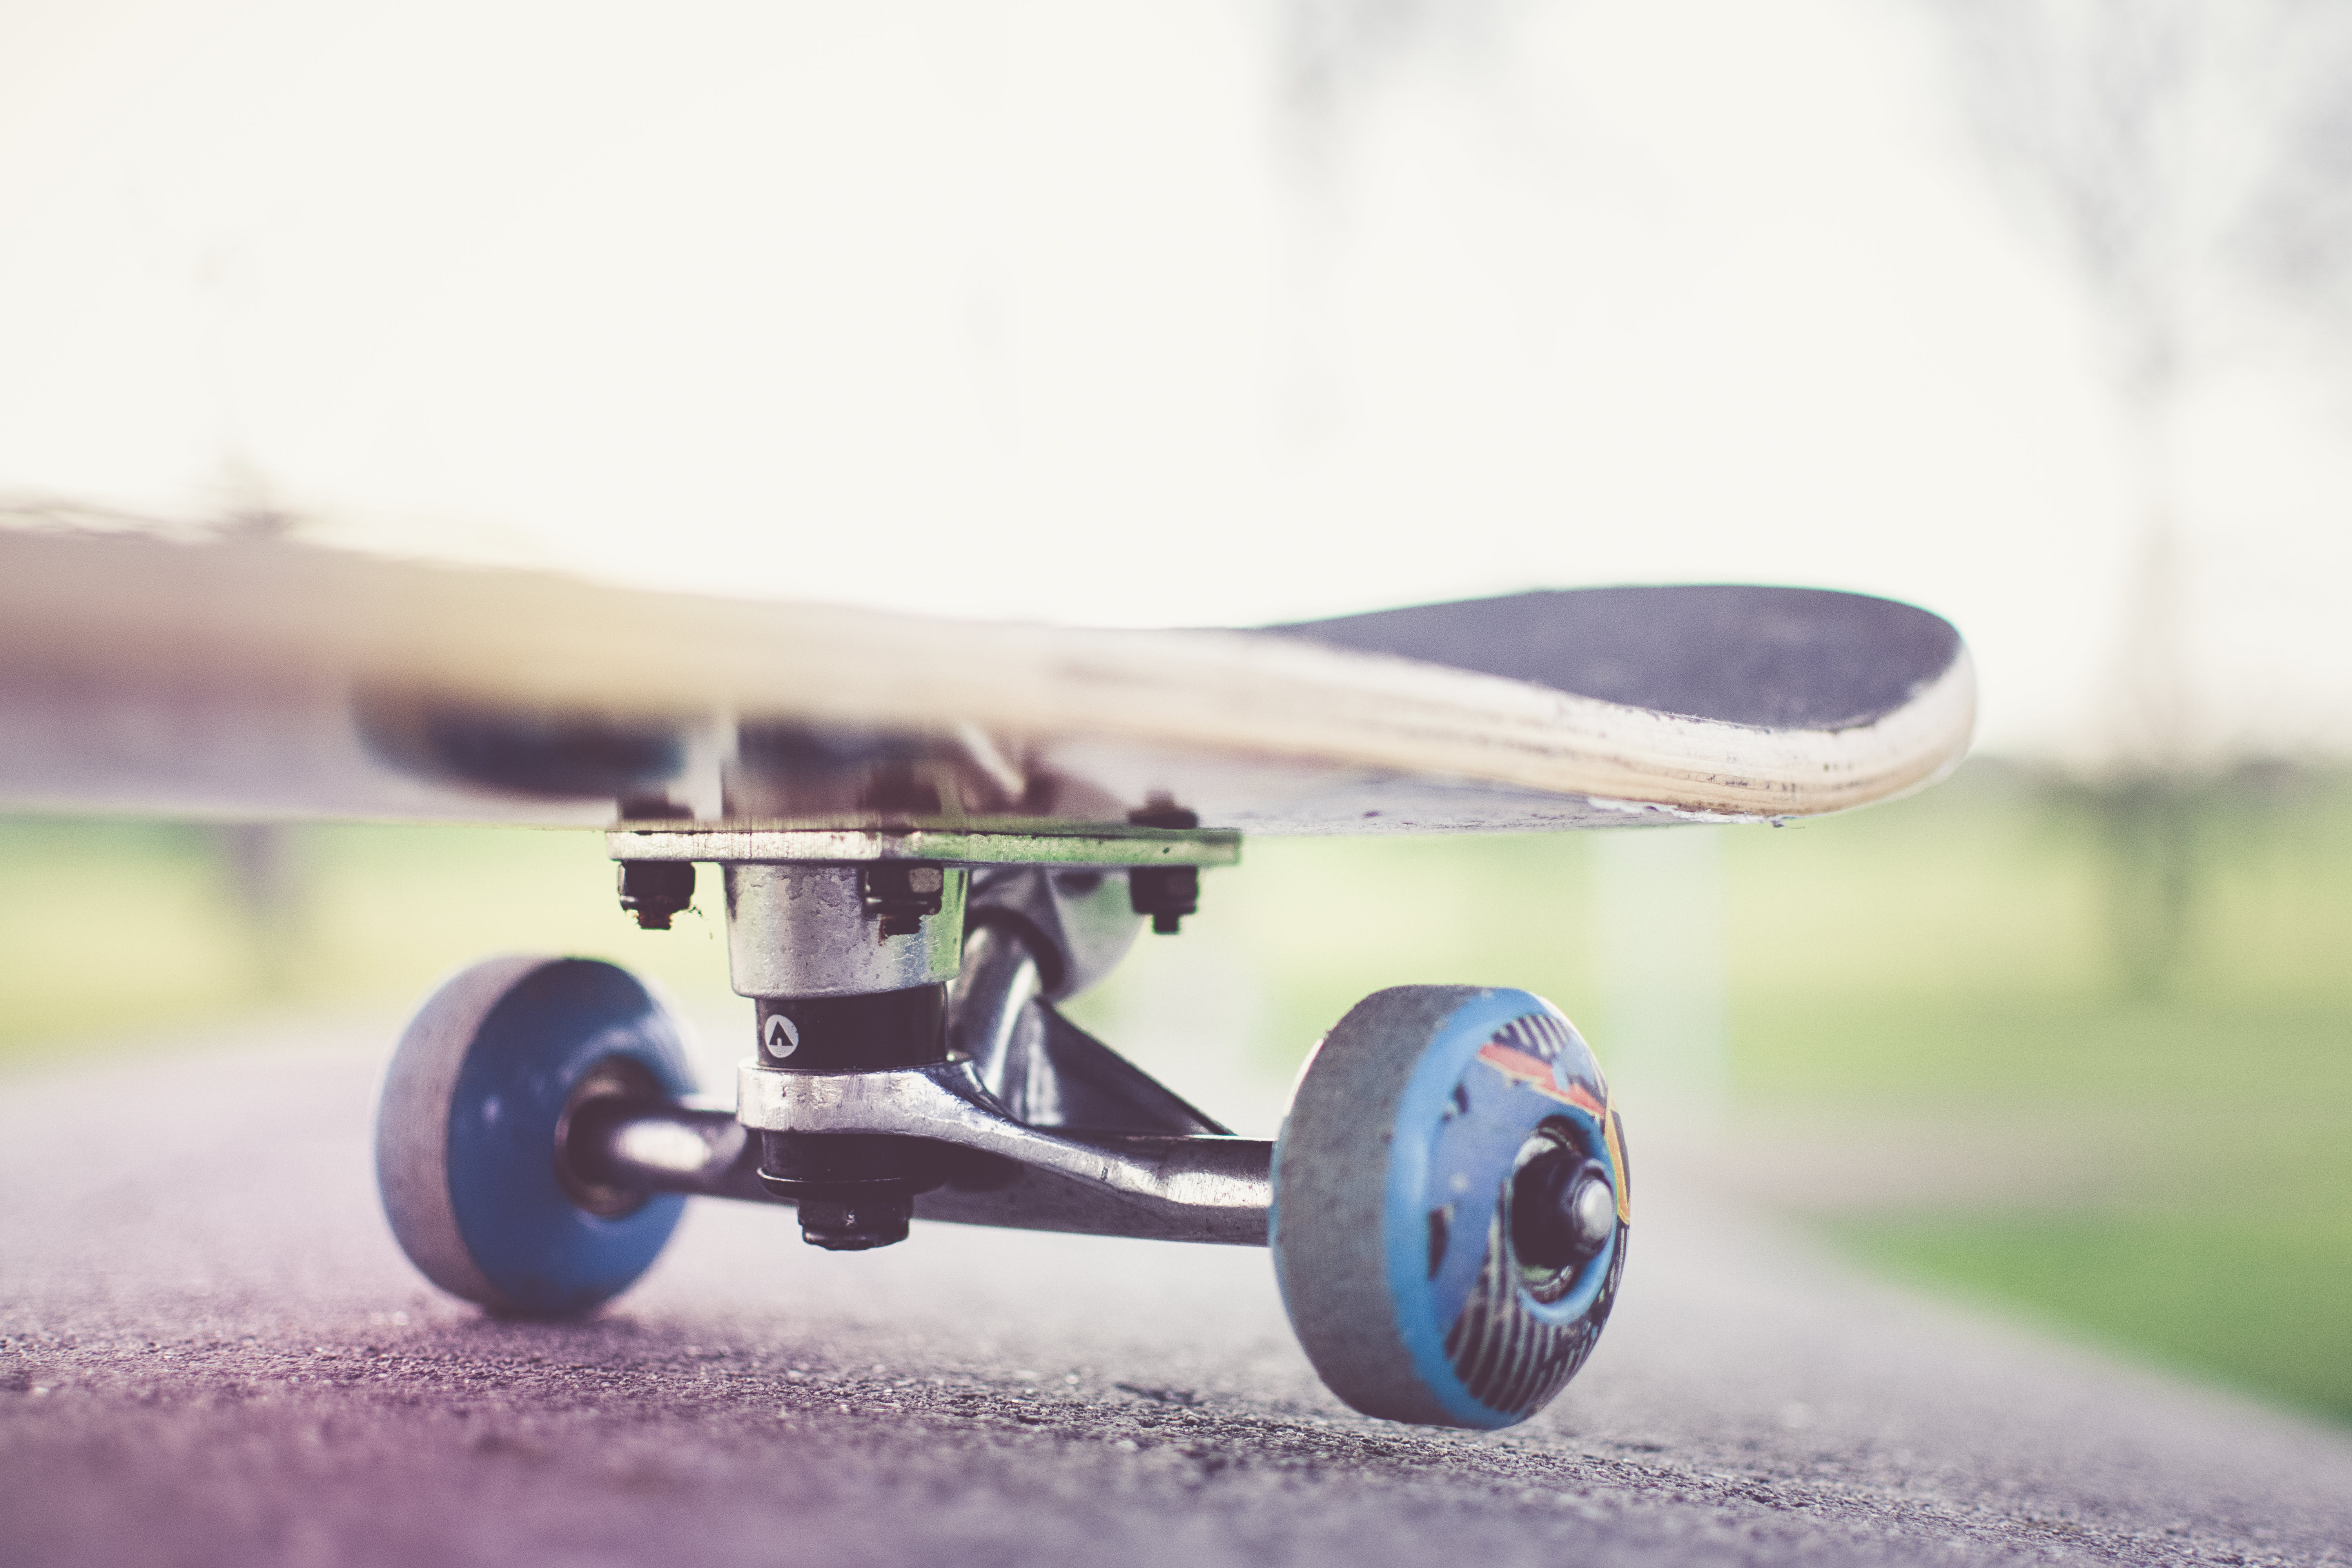 Tilt Shift Lens Photography of Black Skateboard